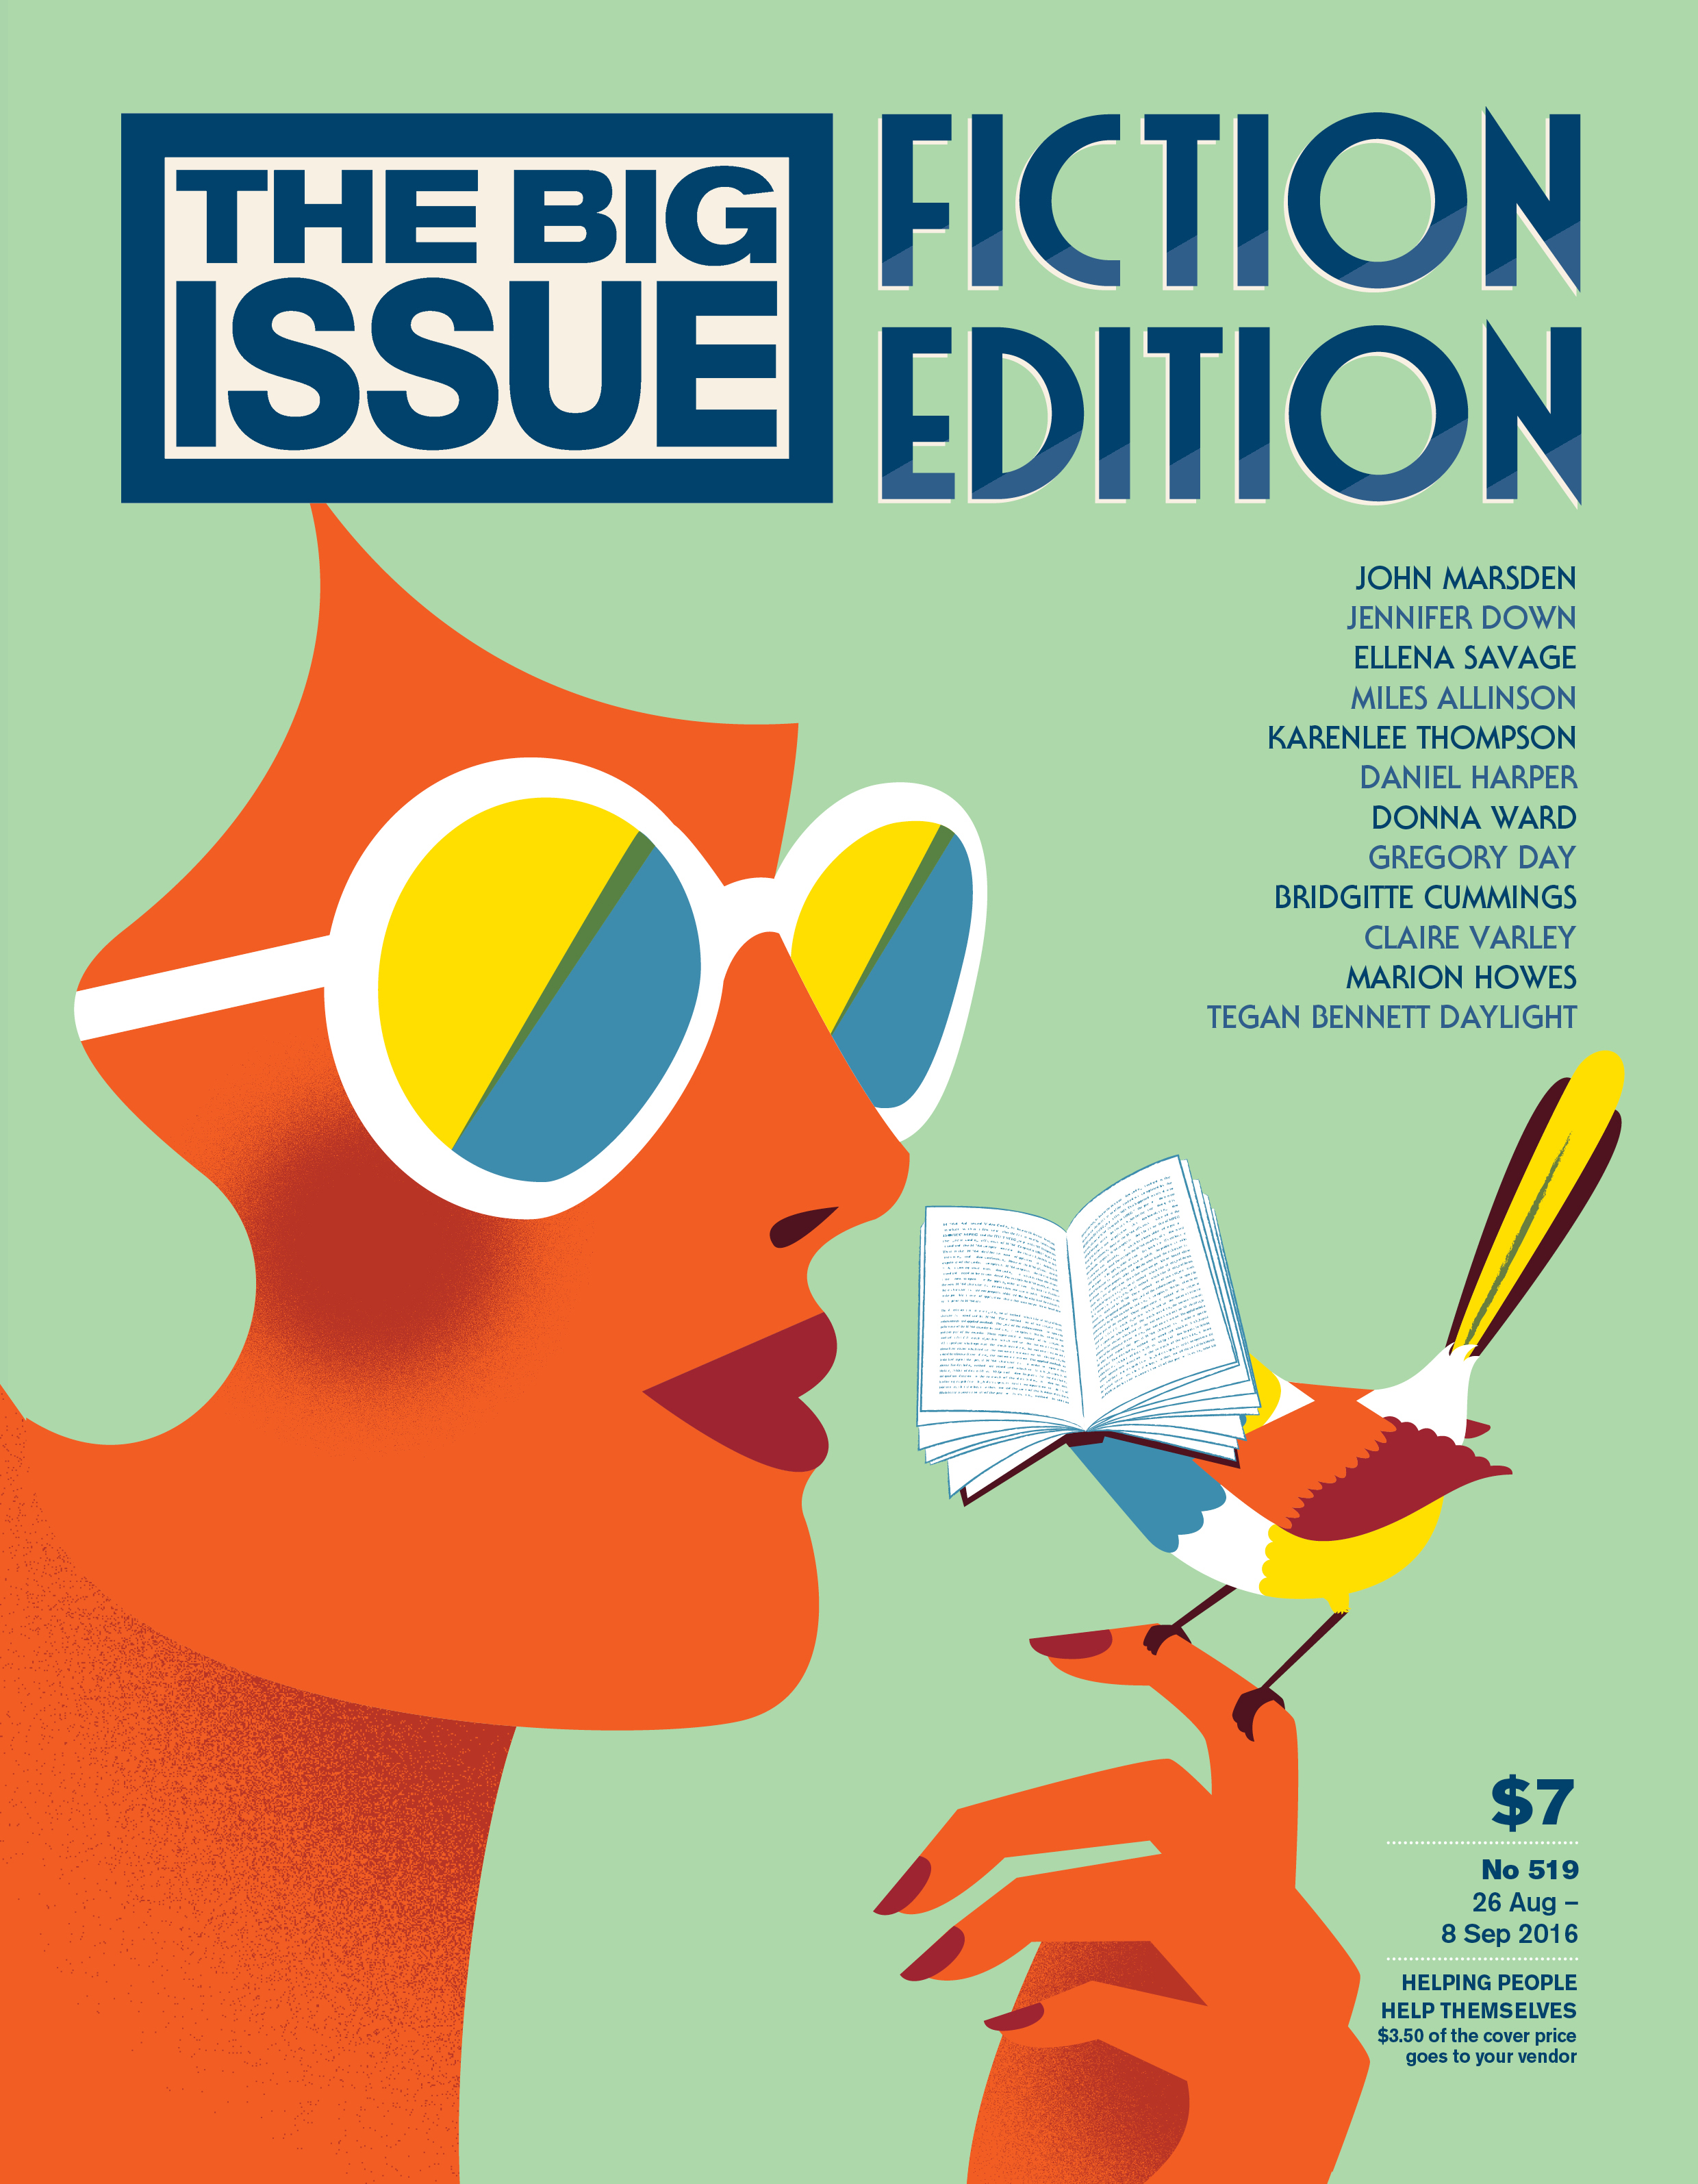 The 2016 Big Issue fiction edition